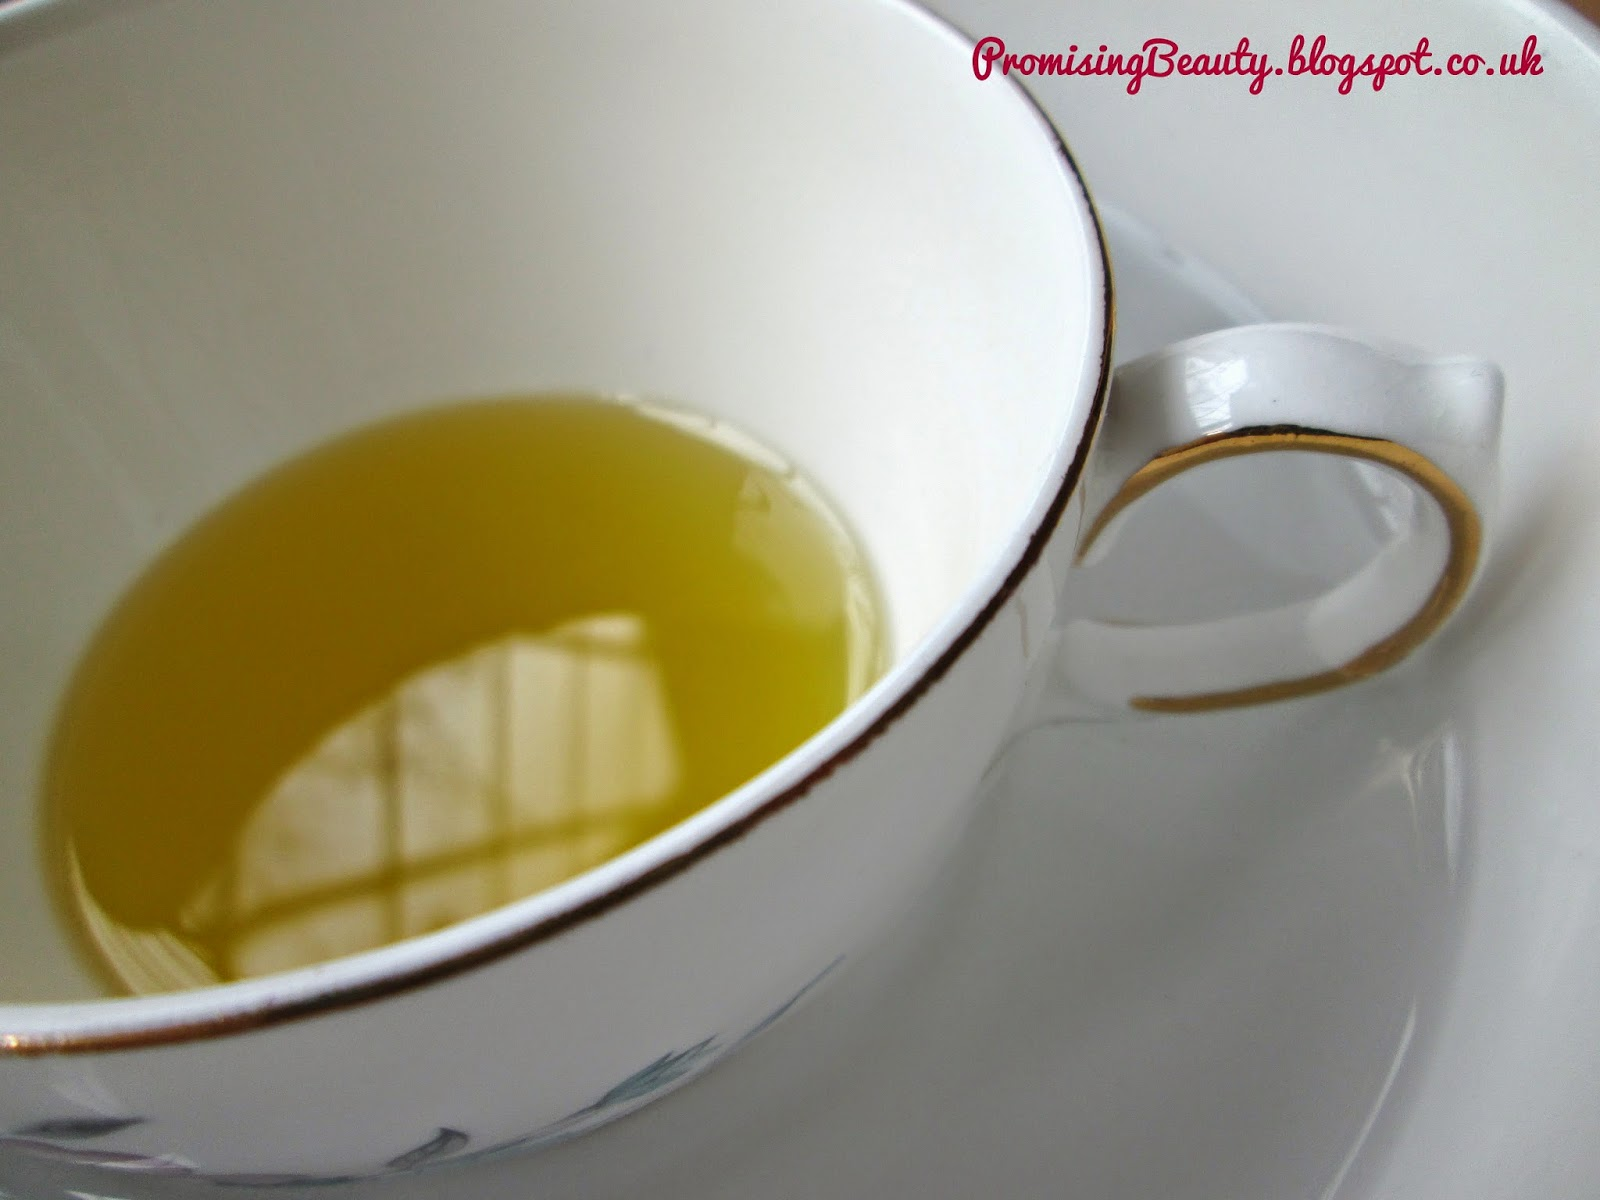 Olive oil being warmed in a teacup and bowl of hot water. Hot oil treatment for dry or damaged hair. DIY beauty from Promising Beauty.